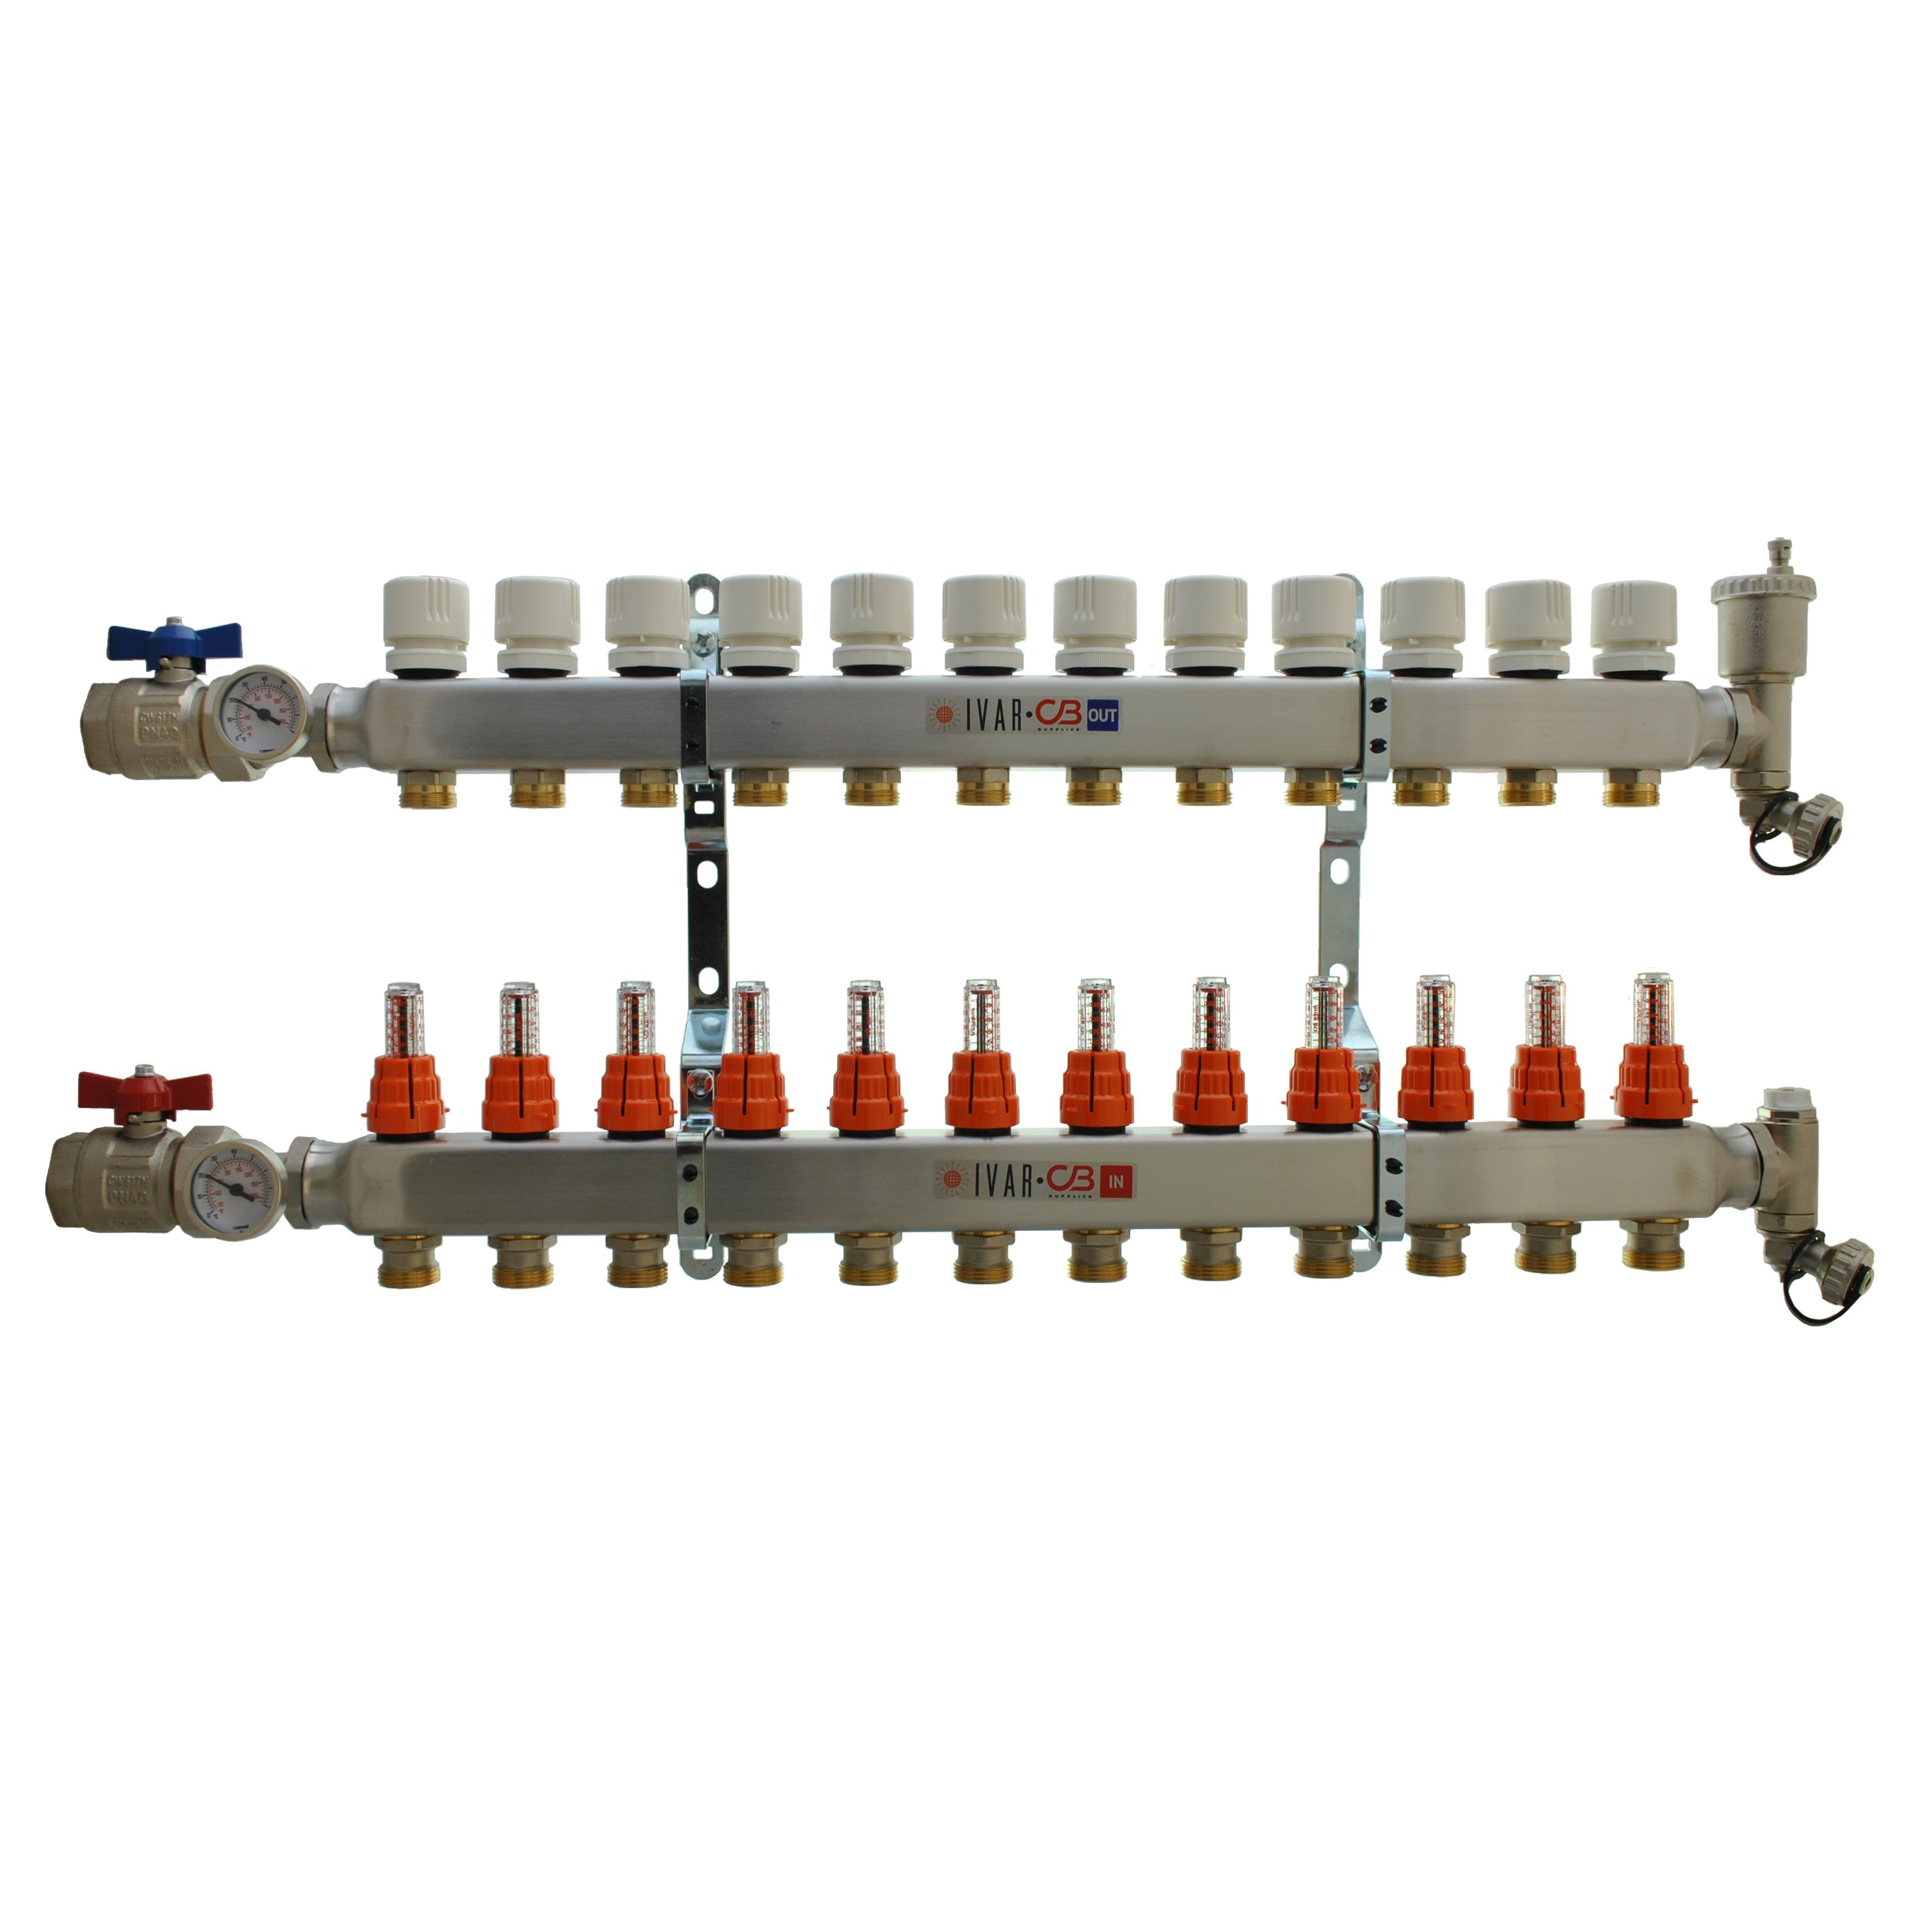 12 Port Manifold with 1/2